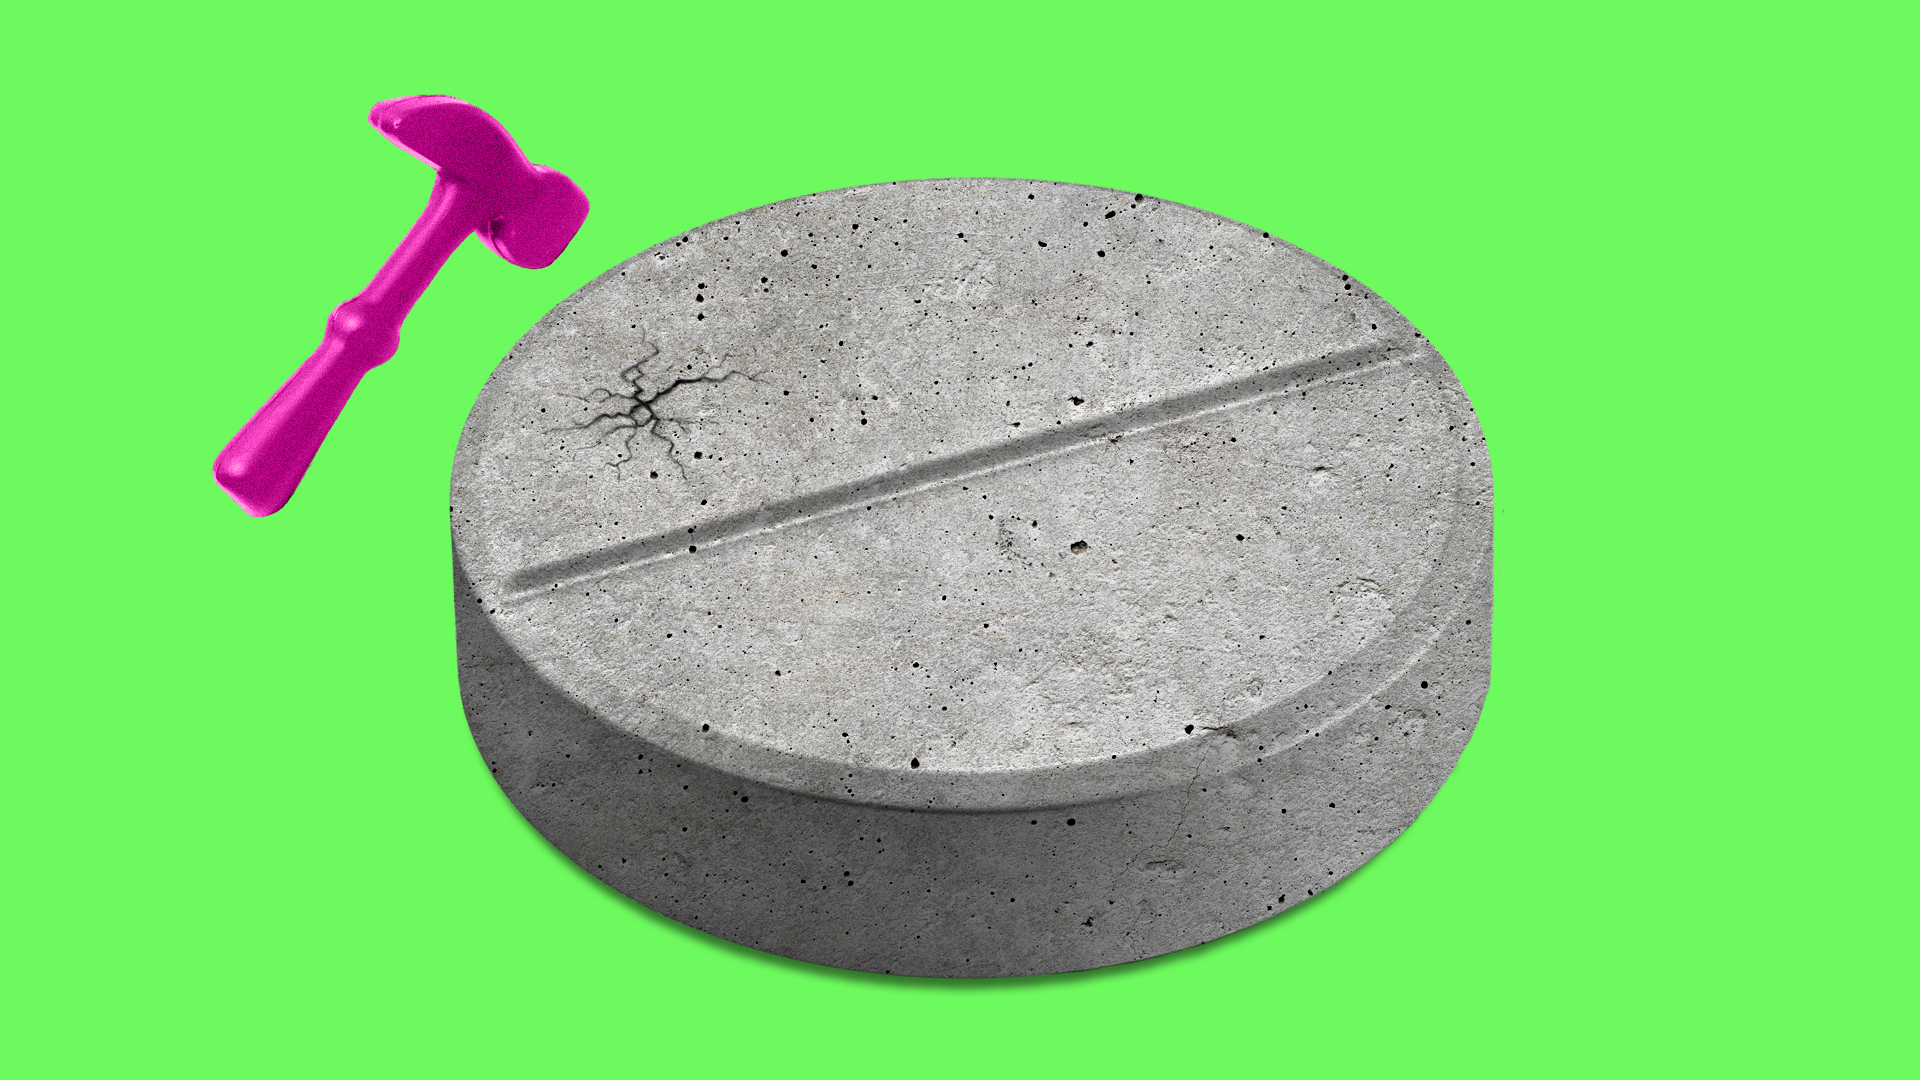 A pill and a hammer